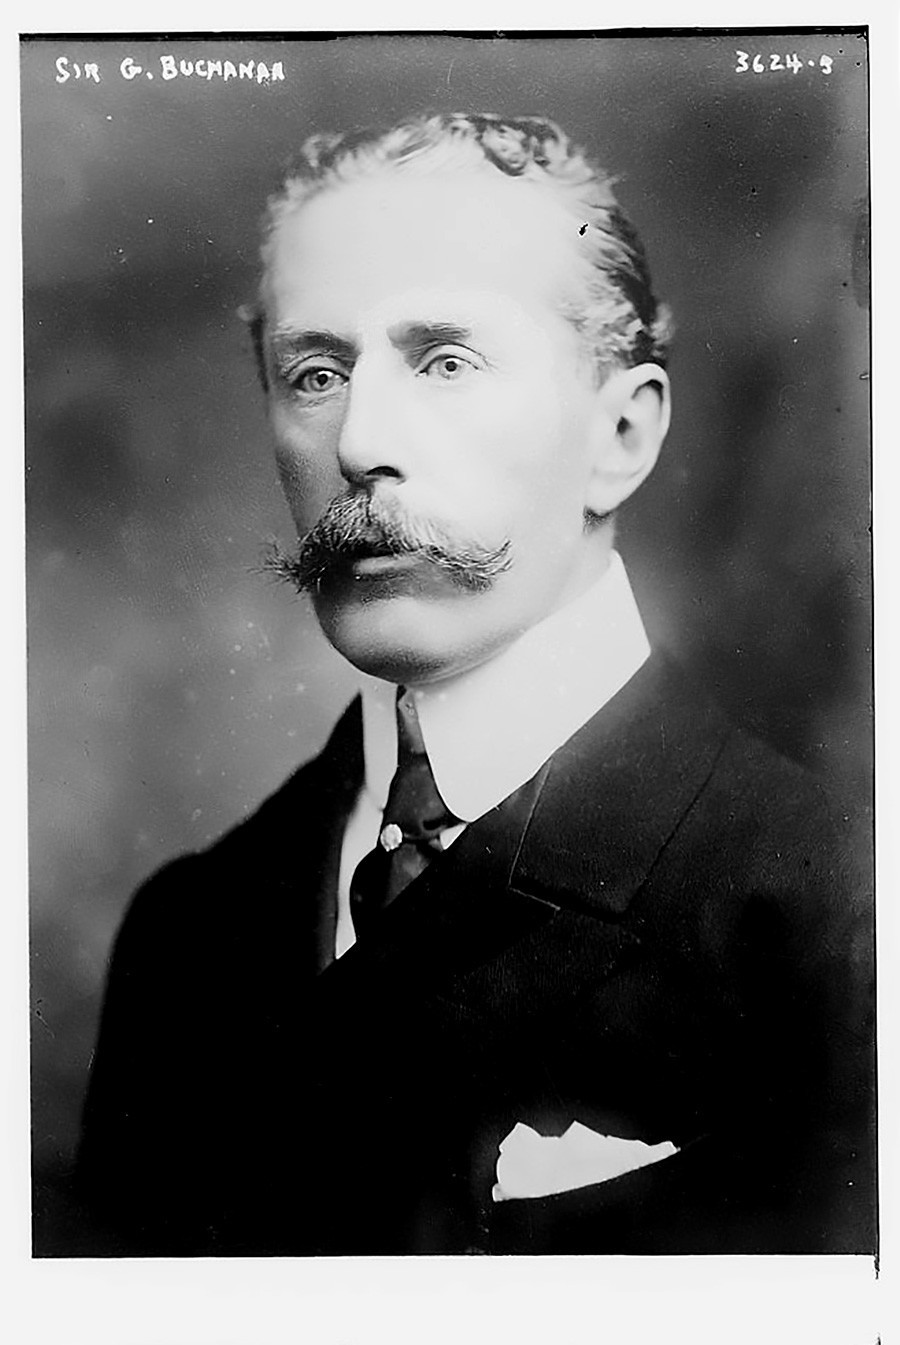 Sir George William Buchanan, 1915.